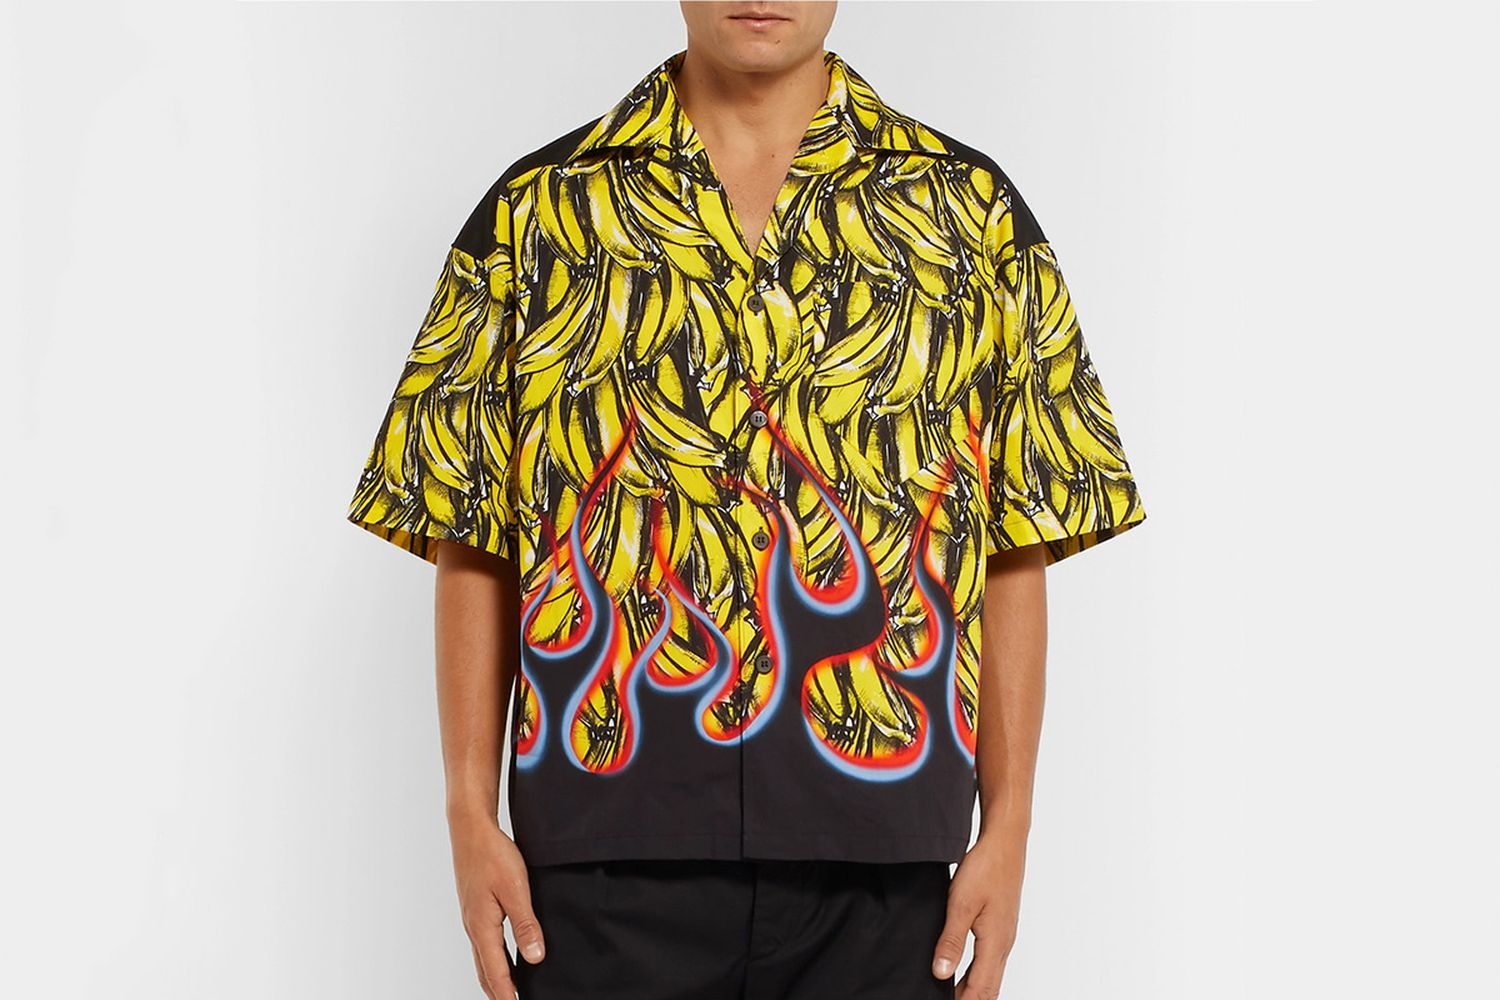 Bananas & Flames Boxy Shirt